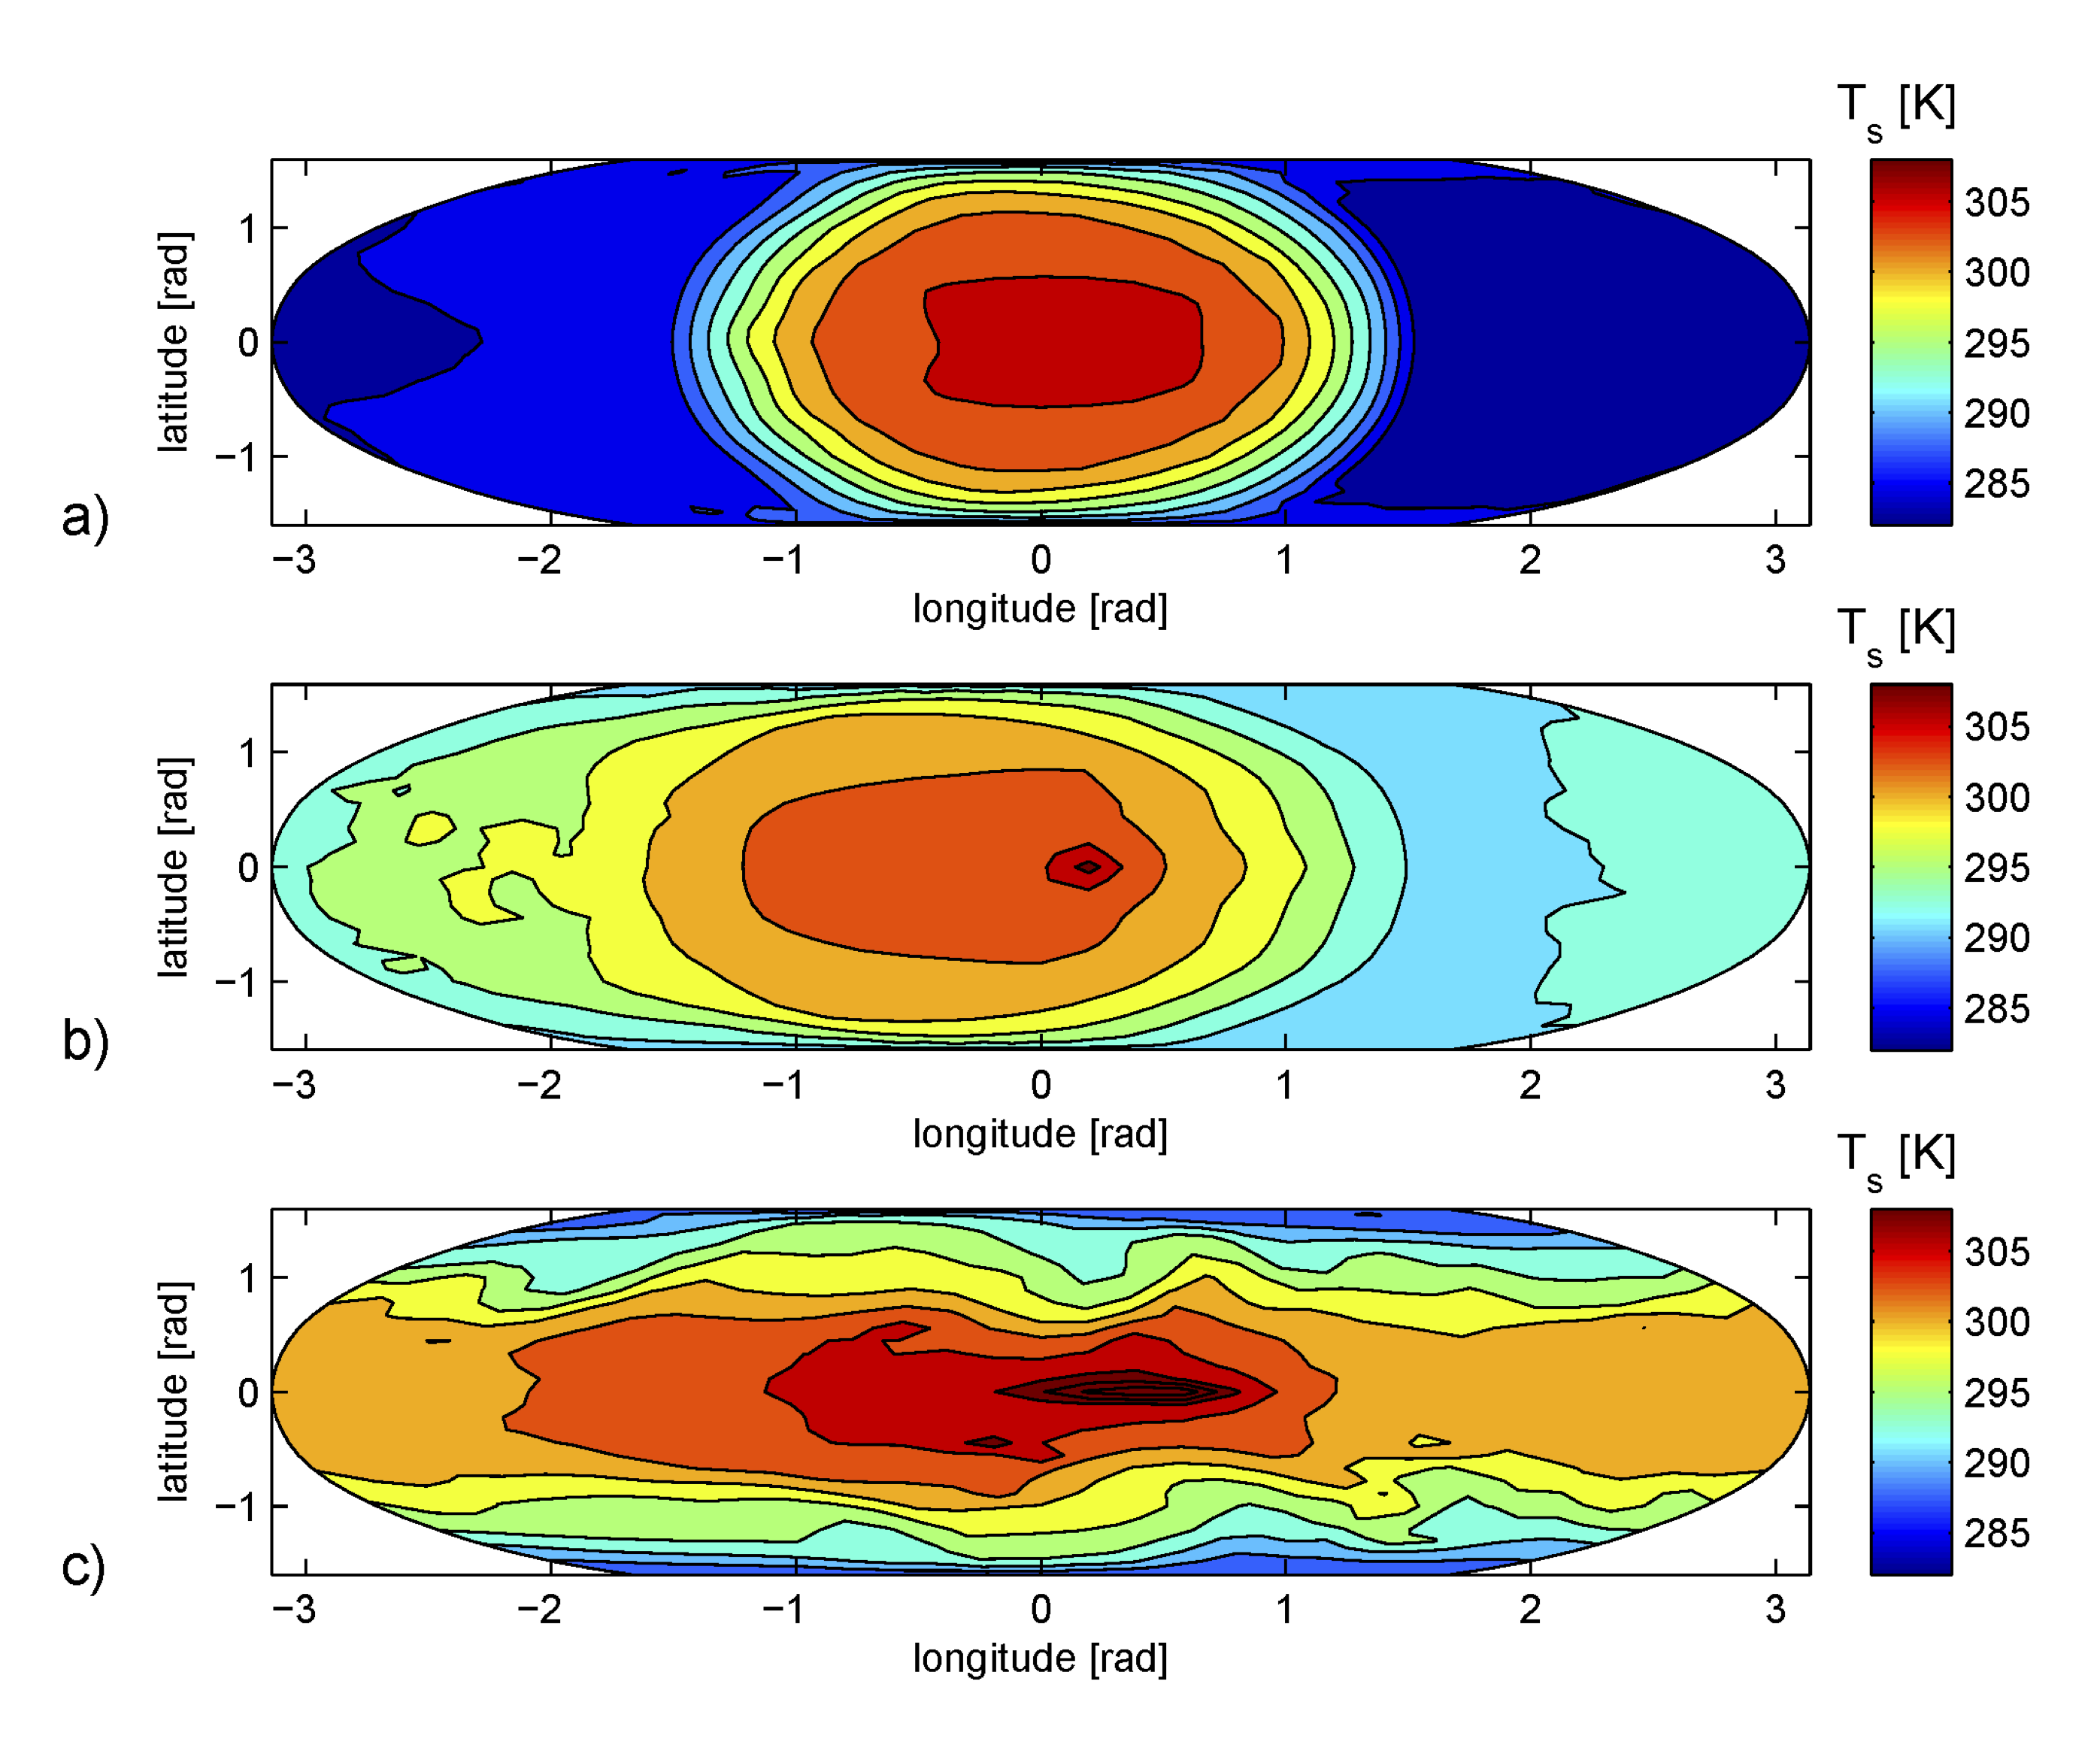 Surface temperatures for a rocky planet with a 20-bar carbon dioxide atmosphere as a function of latitude and longitude for different orbital resonances: a) 1:1, b) 1:2, c) 1:10. Note that all the surface temperatures are above the melting point of water (273 K)